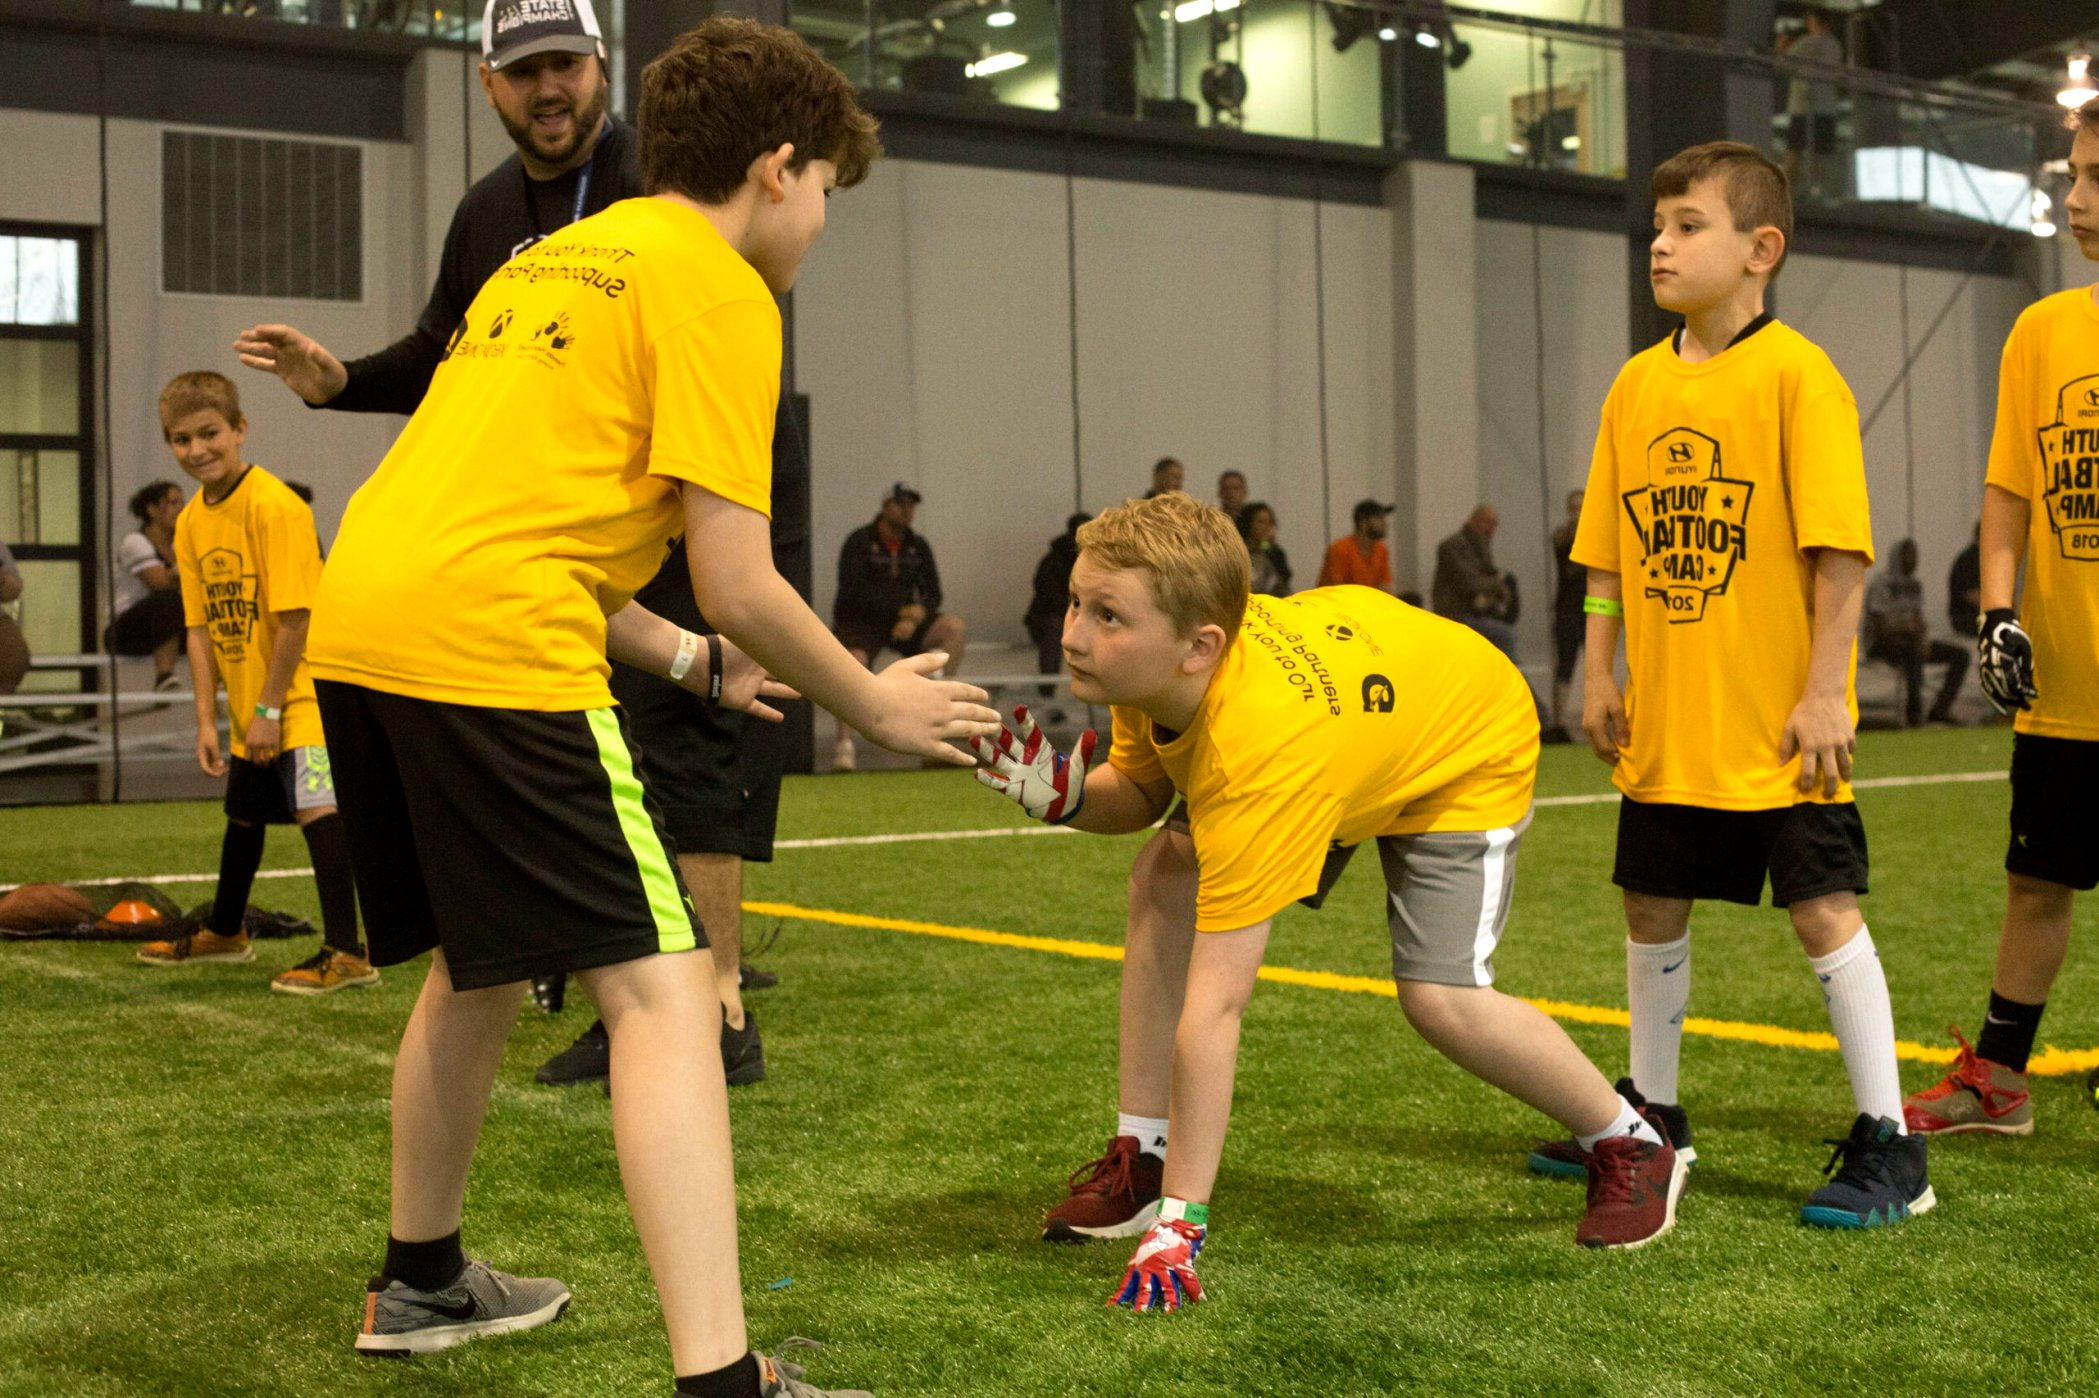 2020 hyundai youth football camp Configurations